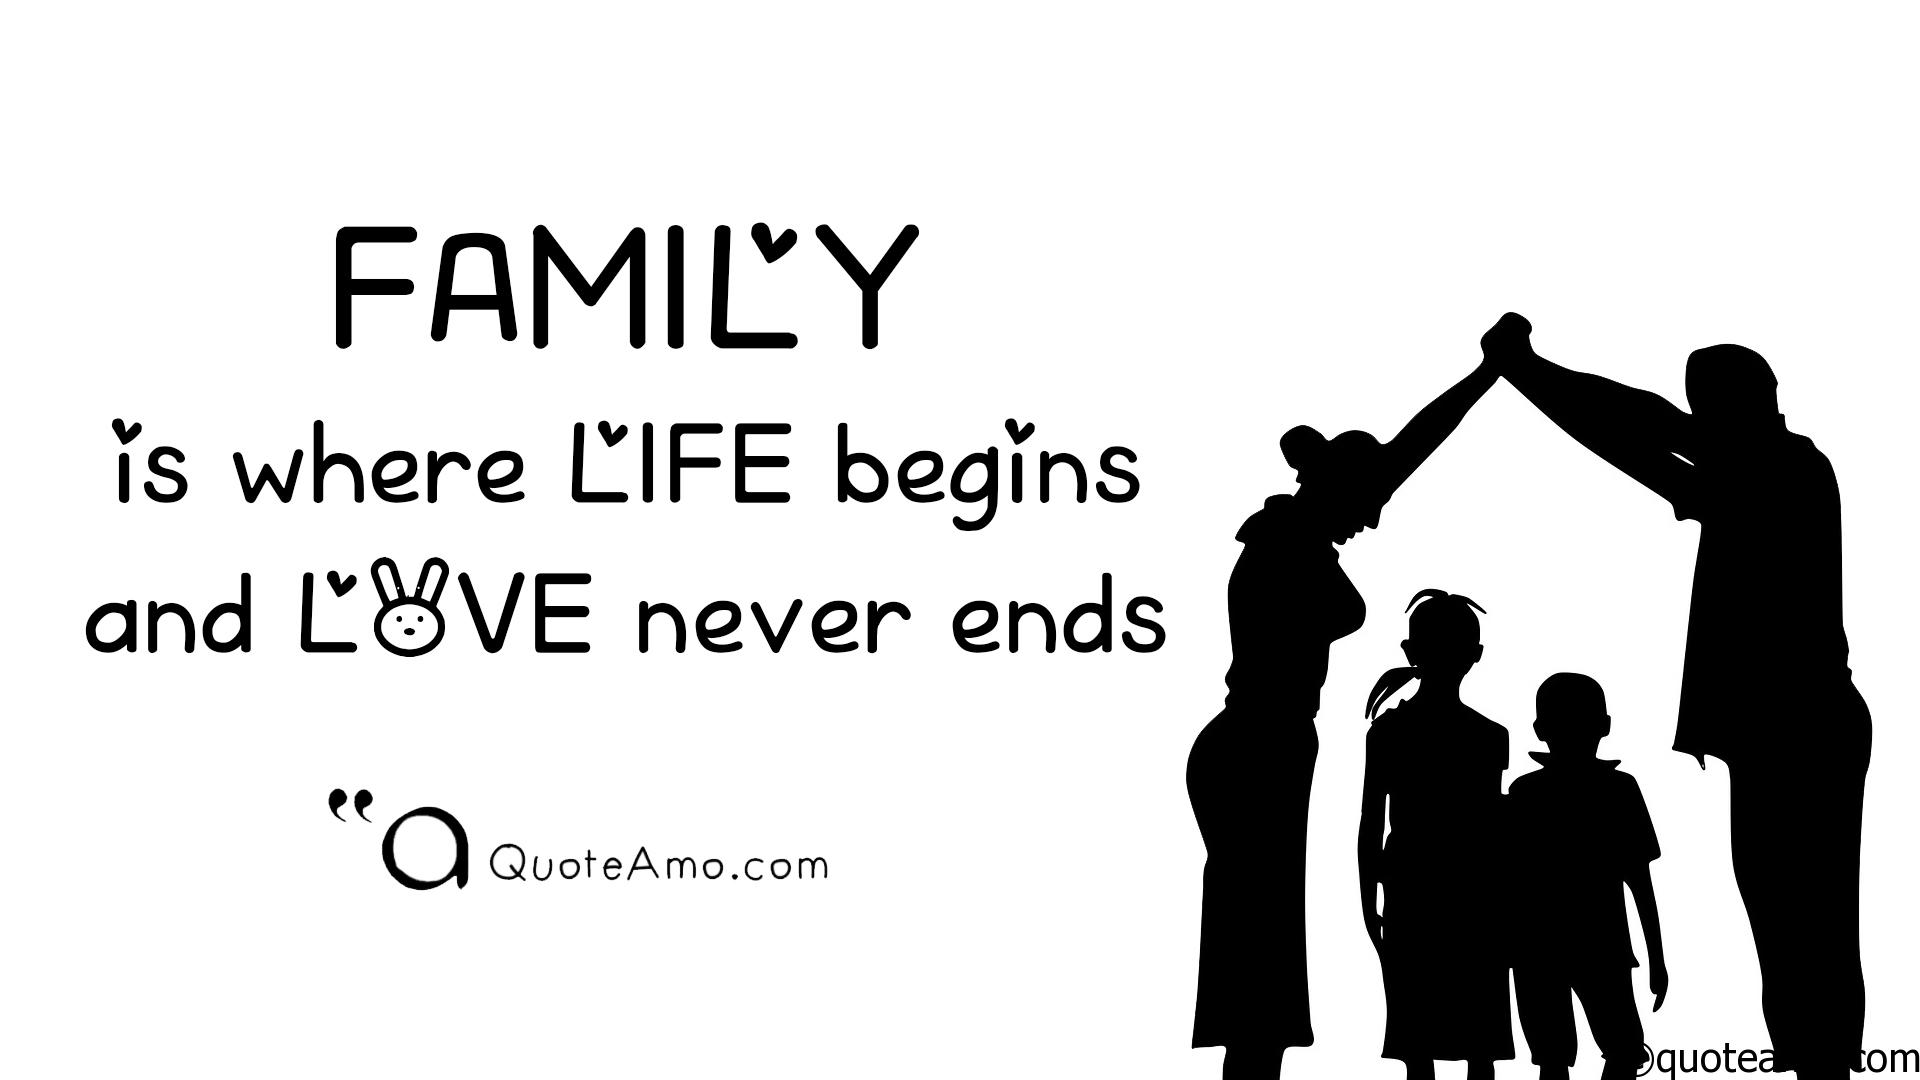 Family Quote Interesting Quotes About Family Background Quotes Hd Screen 1920 * 1080